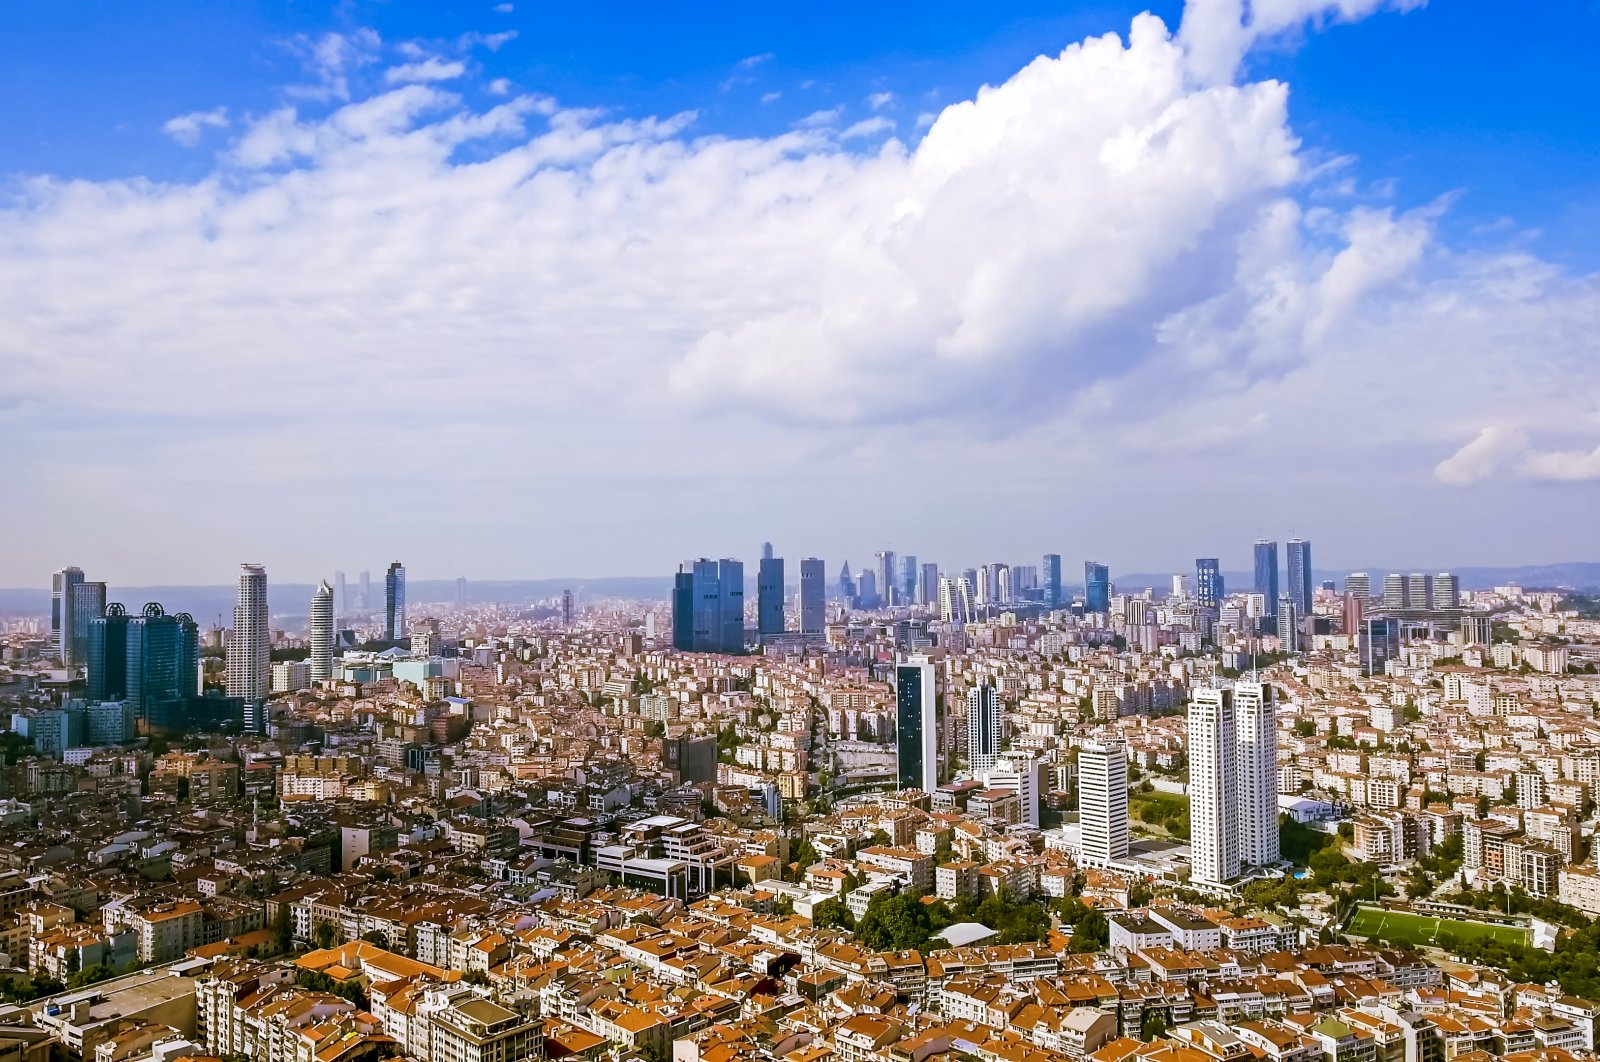 Skyscrapers and buildings are seen in Istanbul, Turkey, Aug. 6, 2017. (iStock Photo)